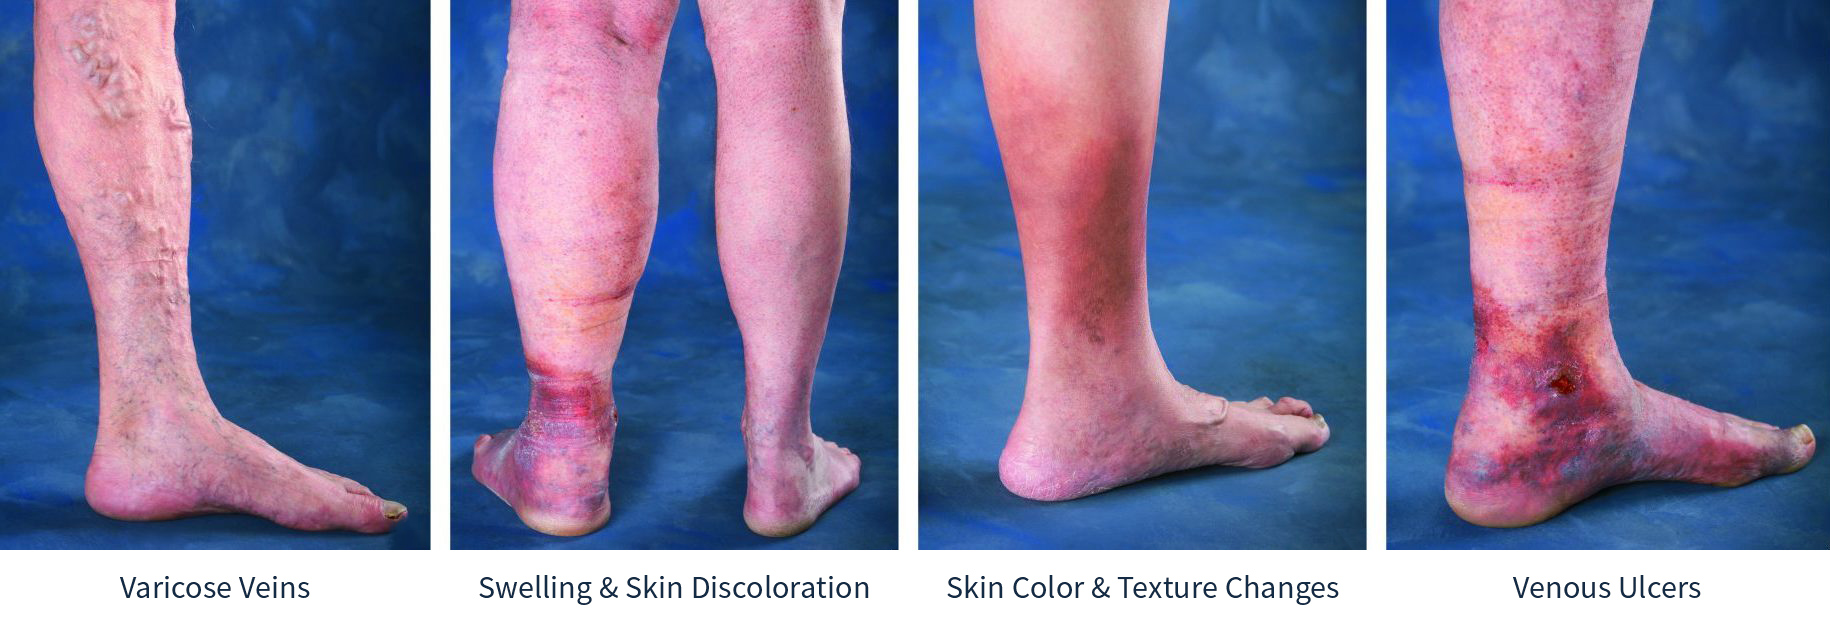 Vein Disease Progression